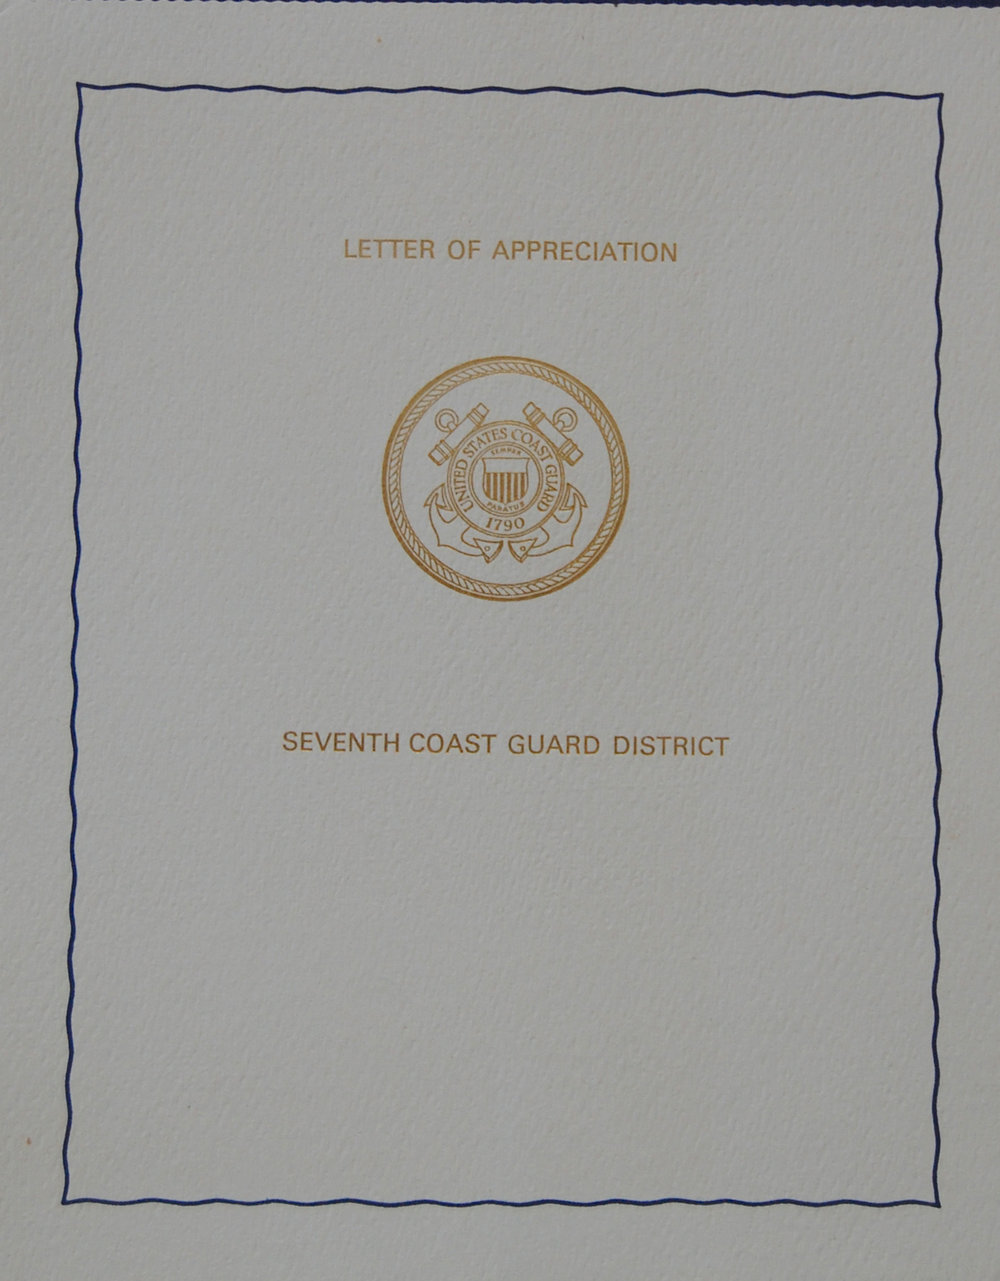 USCG Letter of Appreciation Pg 1 Cover 1976.jpg